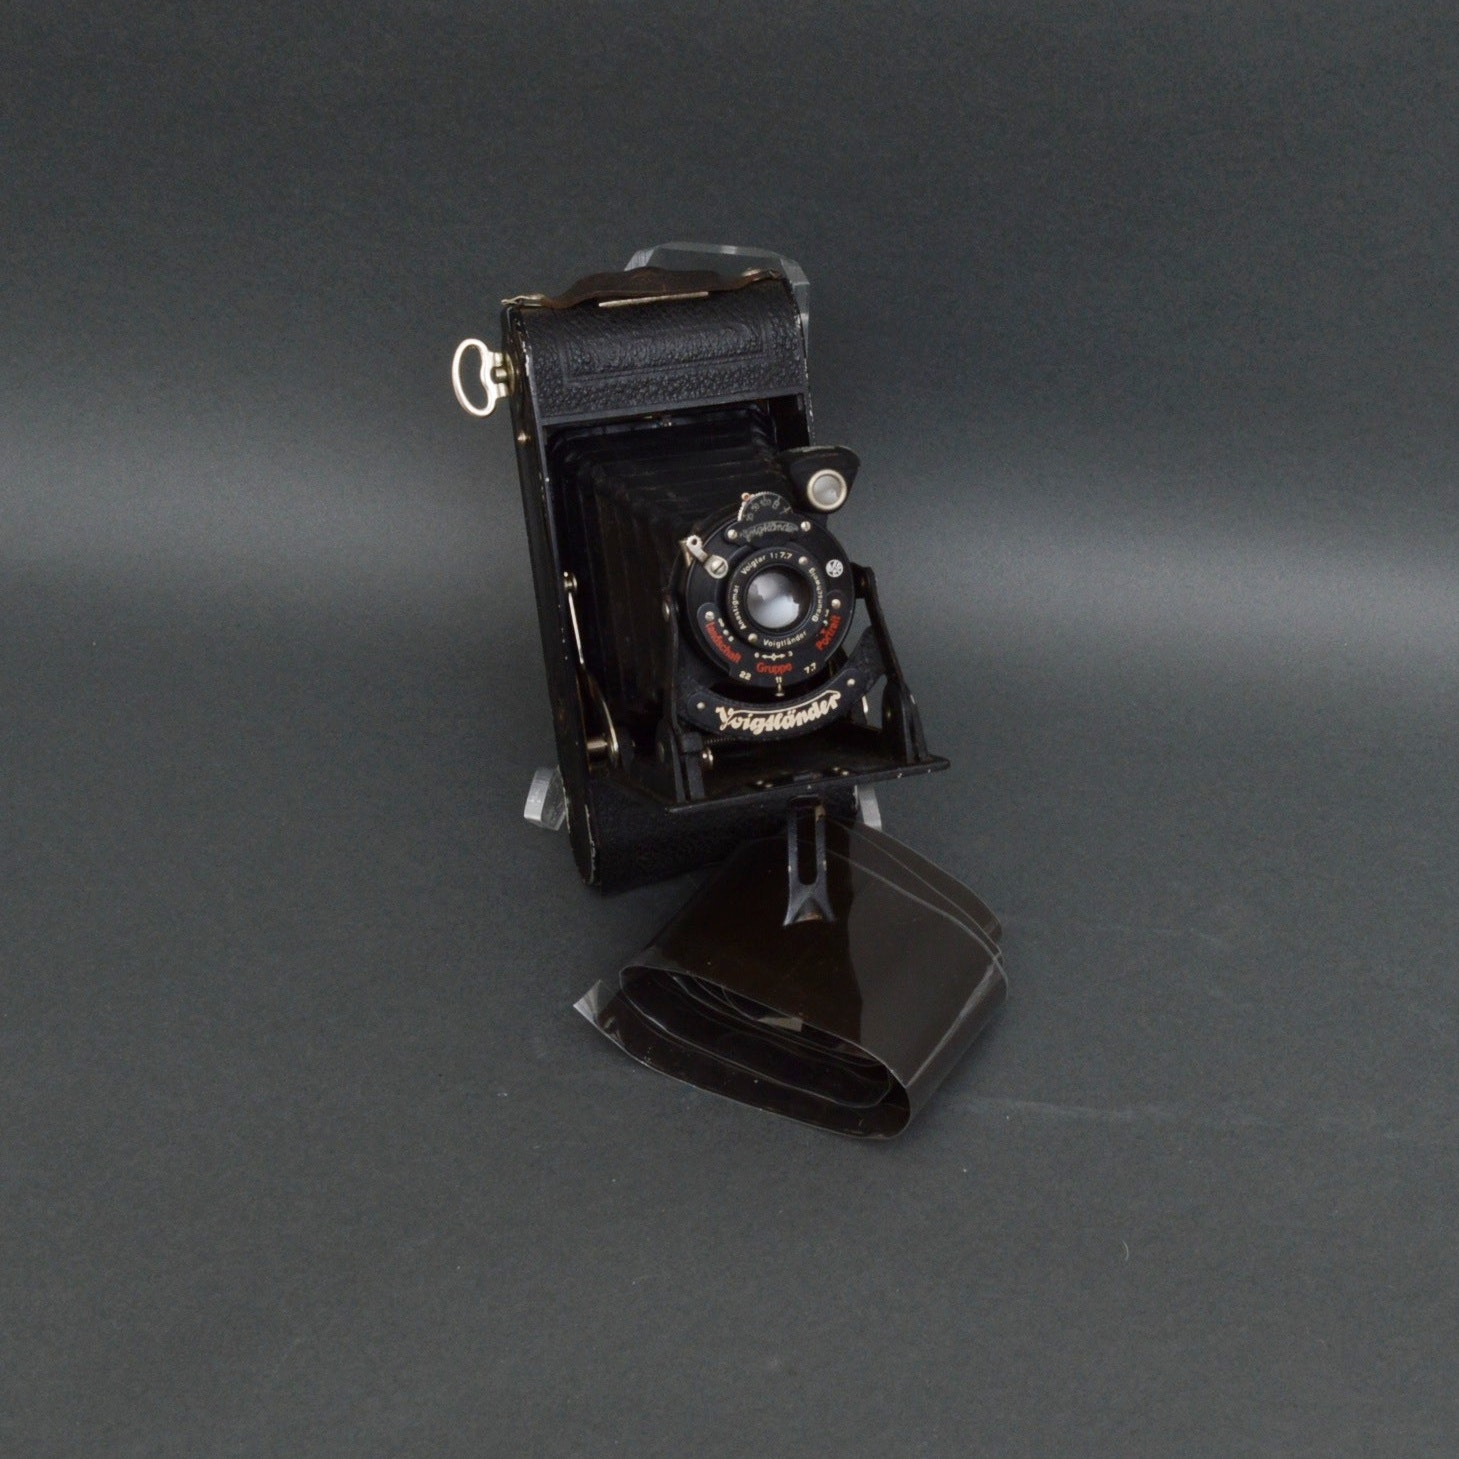 Voigtlander Bessa f/7.7 Folding Camera